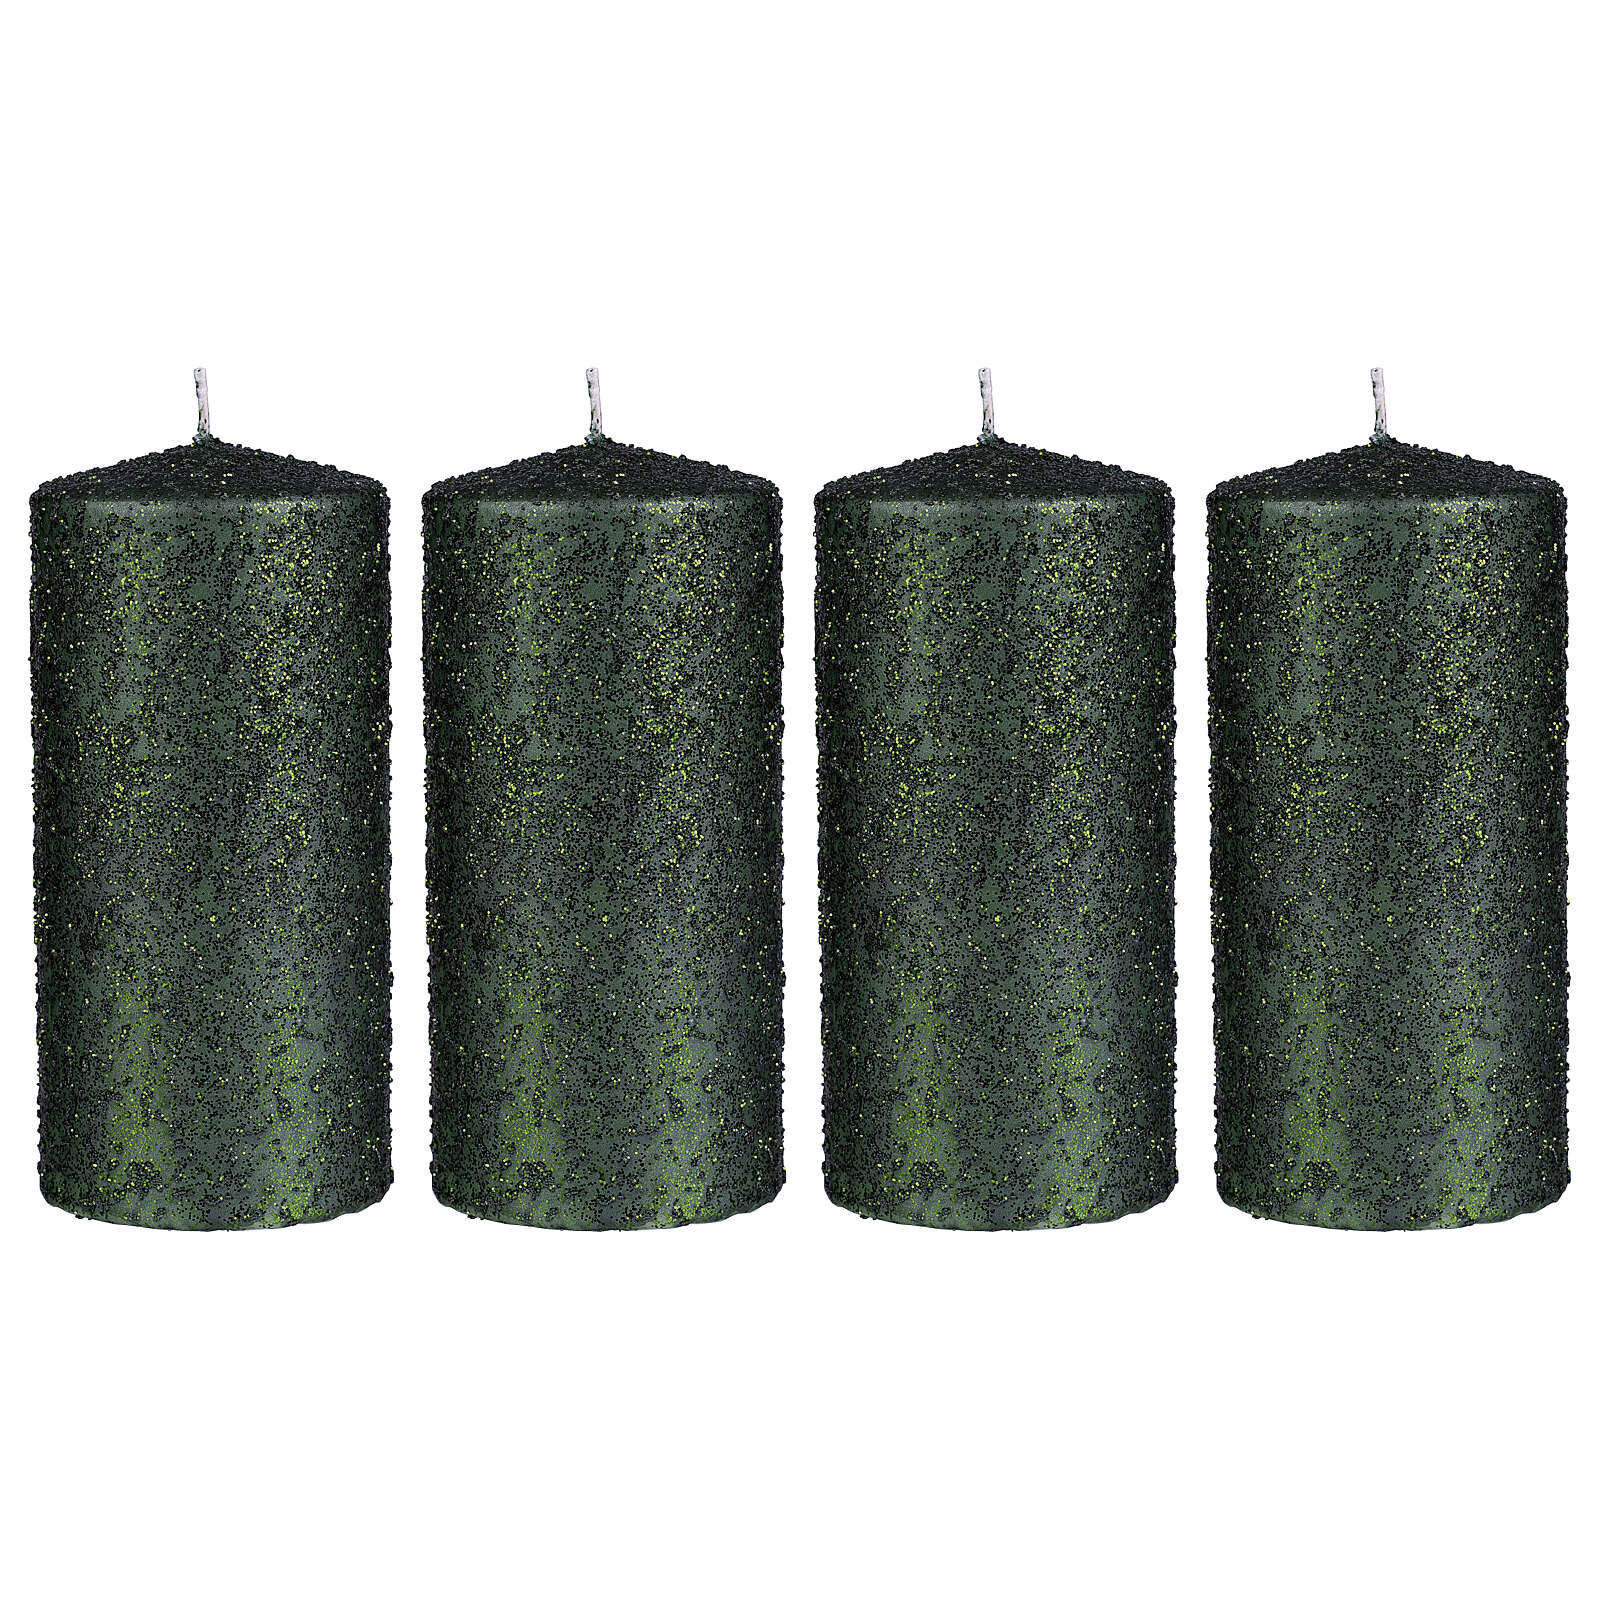 Christmas candles, set of 4, green with glittery flakes, 150x70 mm 3